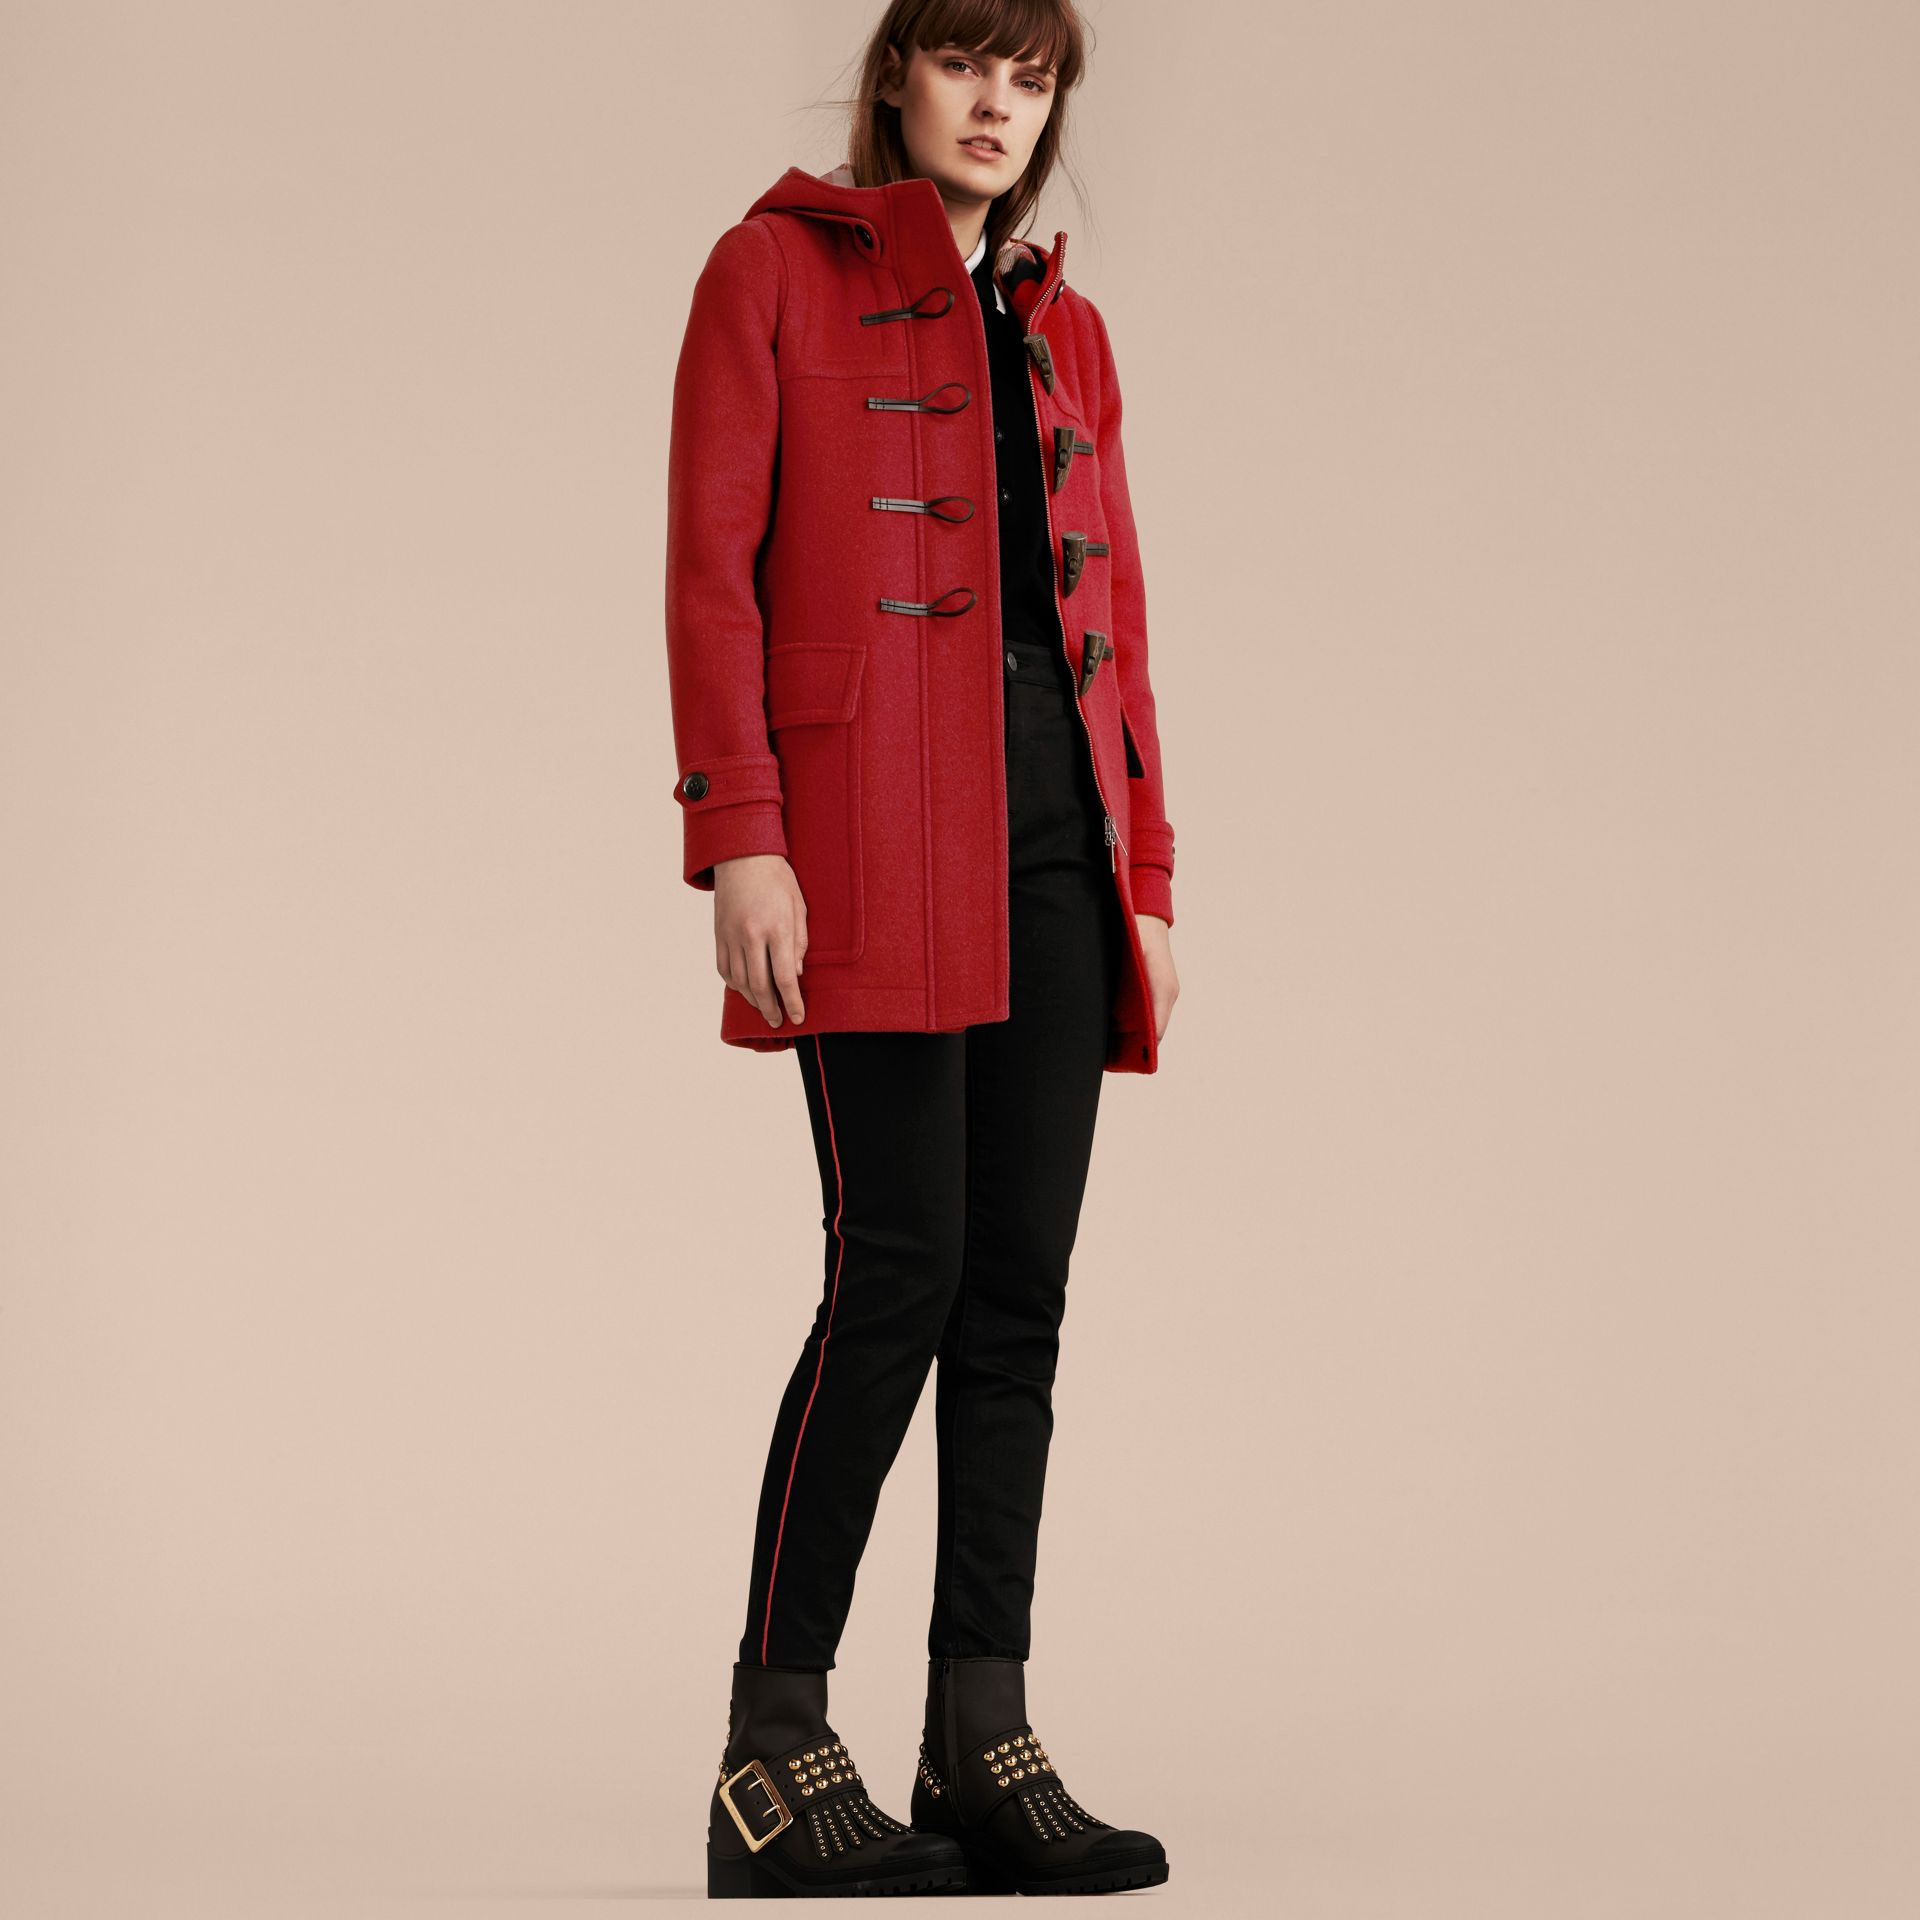 Windsor red Wool Duffle Coat with Check and Hearts Lining Windsor Red - gallery image 8